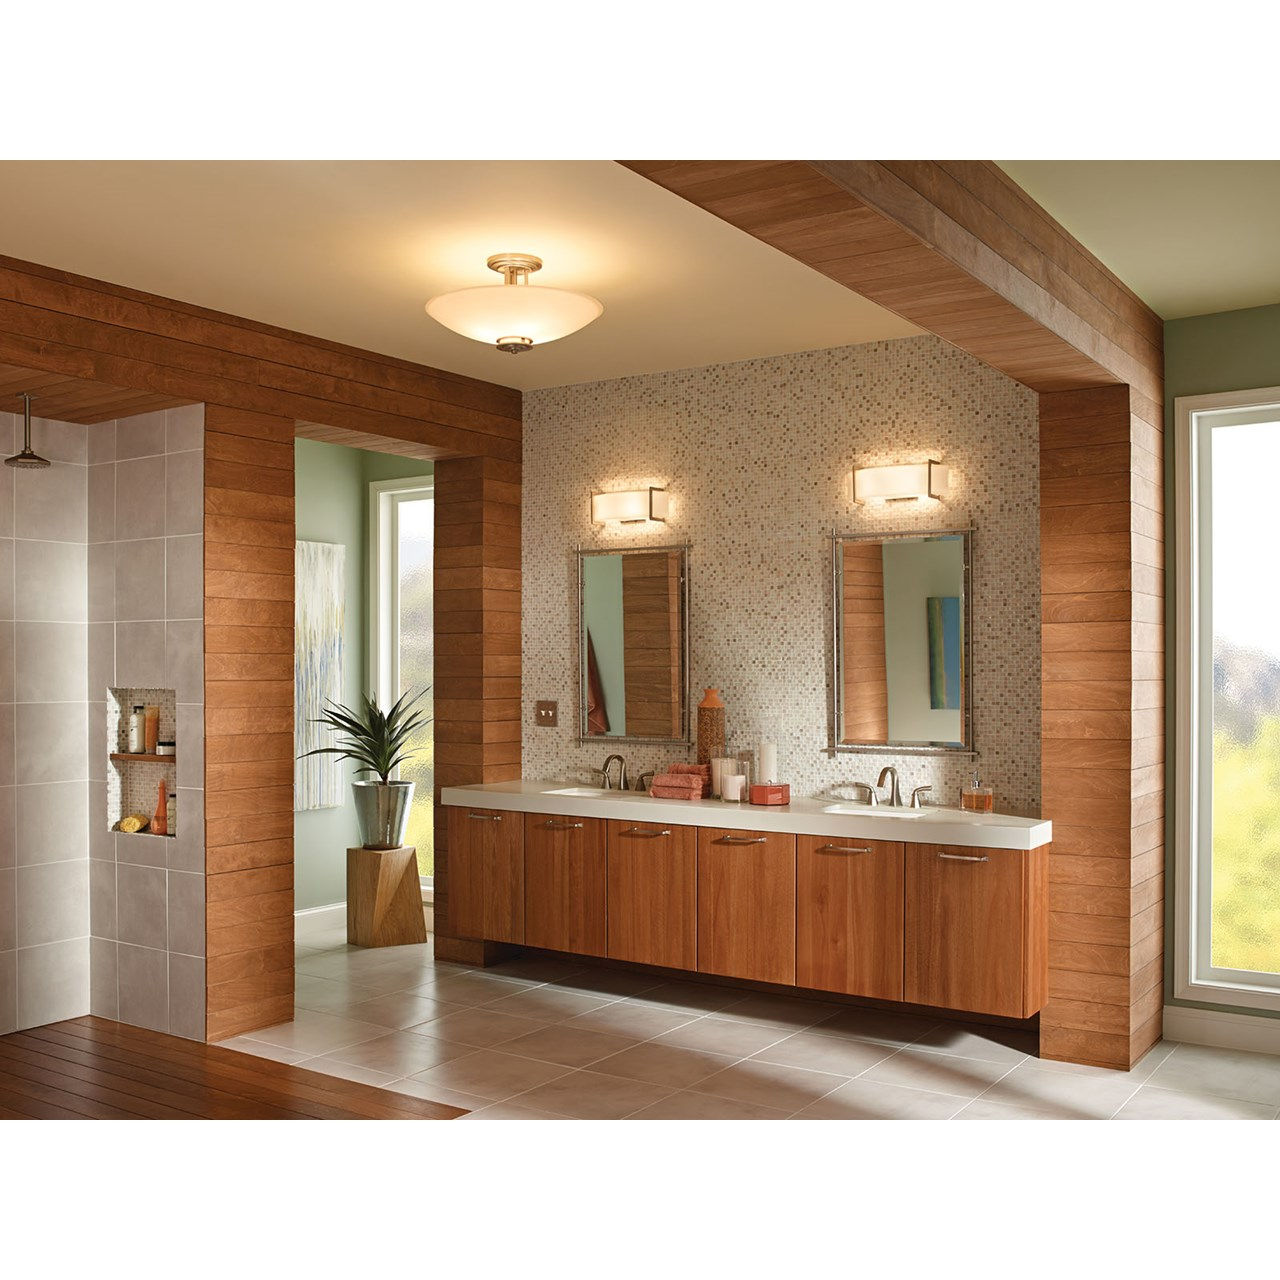 "Crescent View 24"" Linear Vanity Light Brushed Nickel"